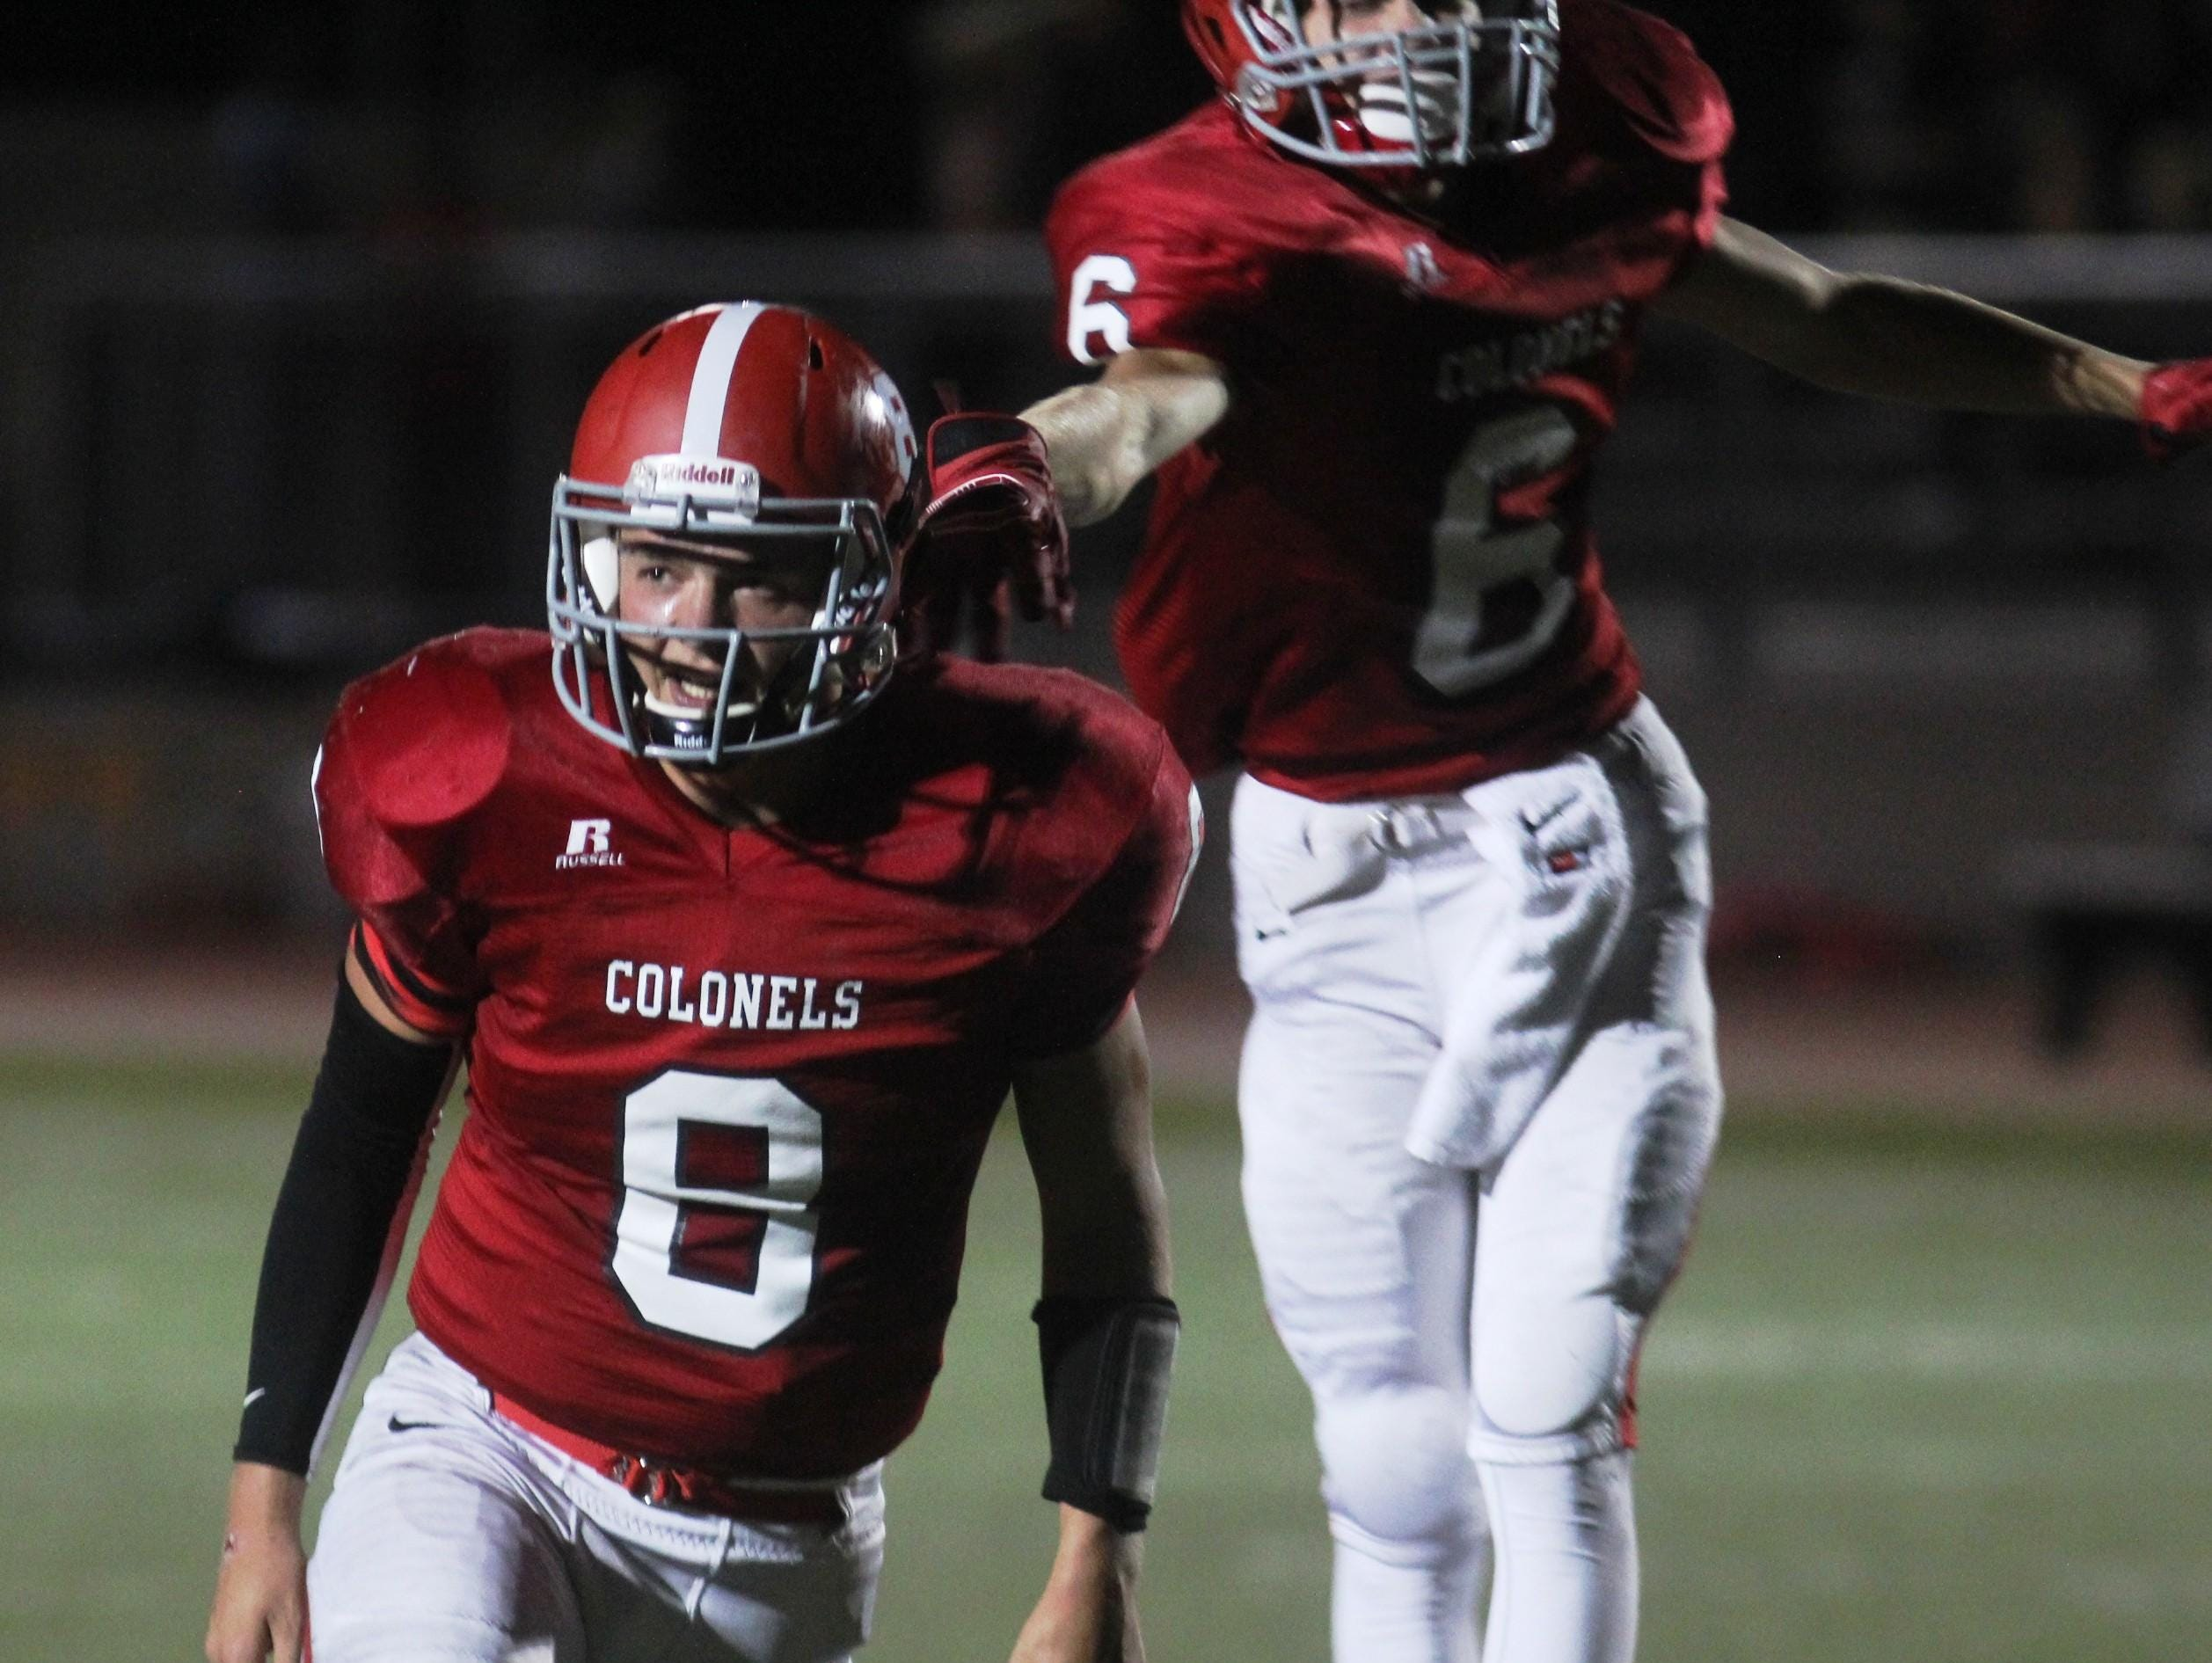 Dixie Heights' Gunther Faeth, front, gestures to the crowd after his second touchdown run of the game against Boone County.